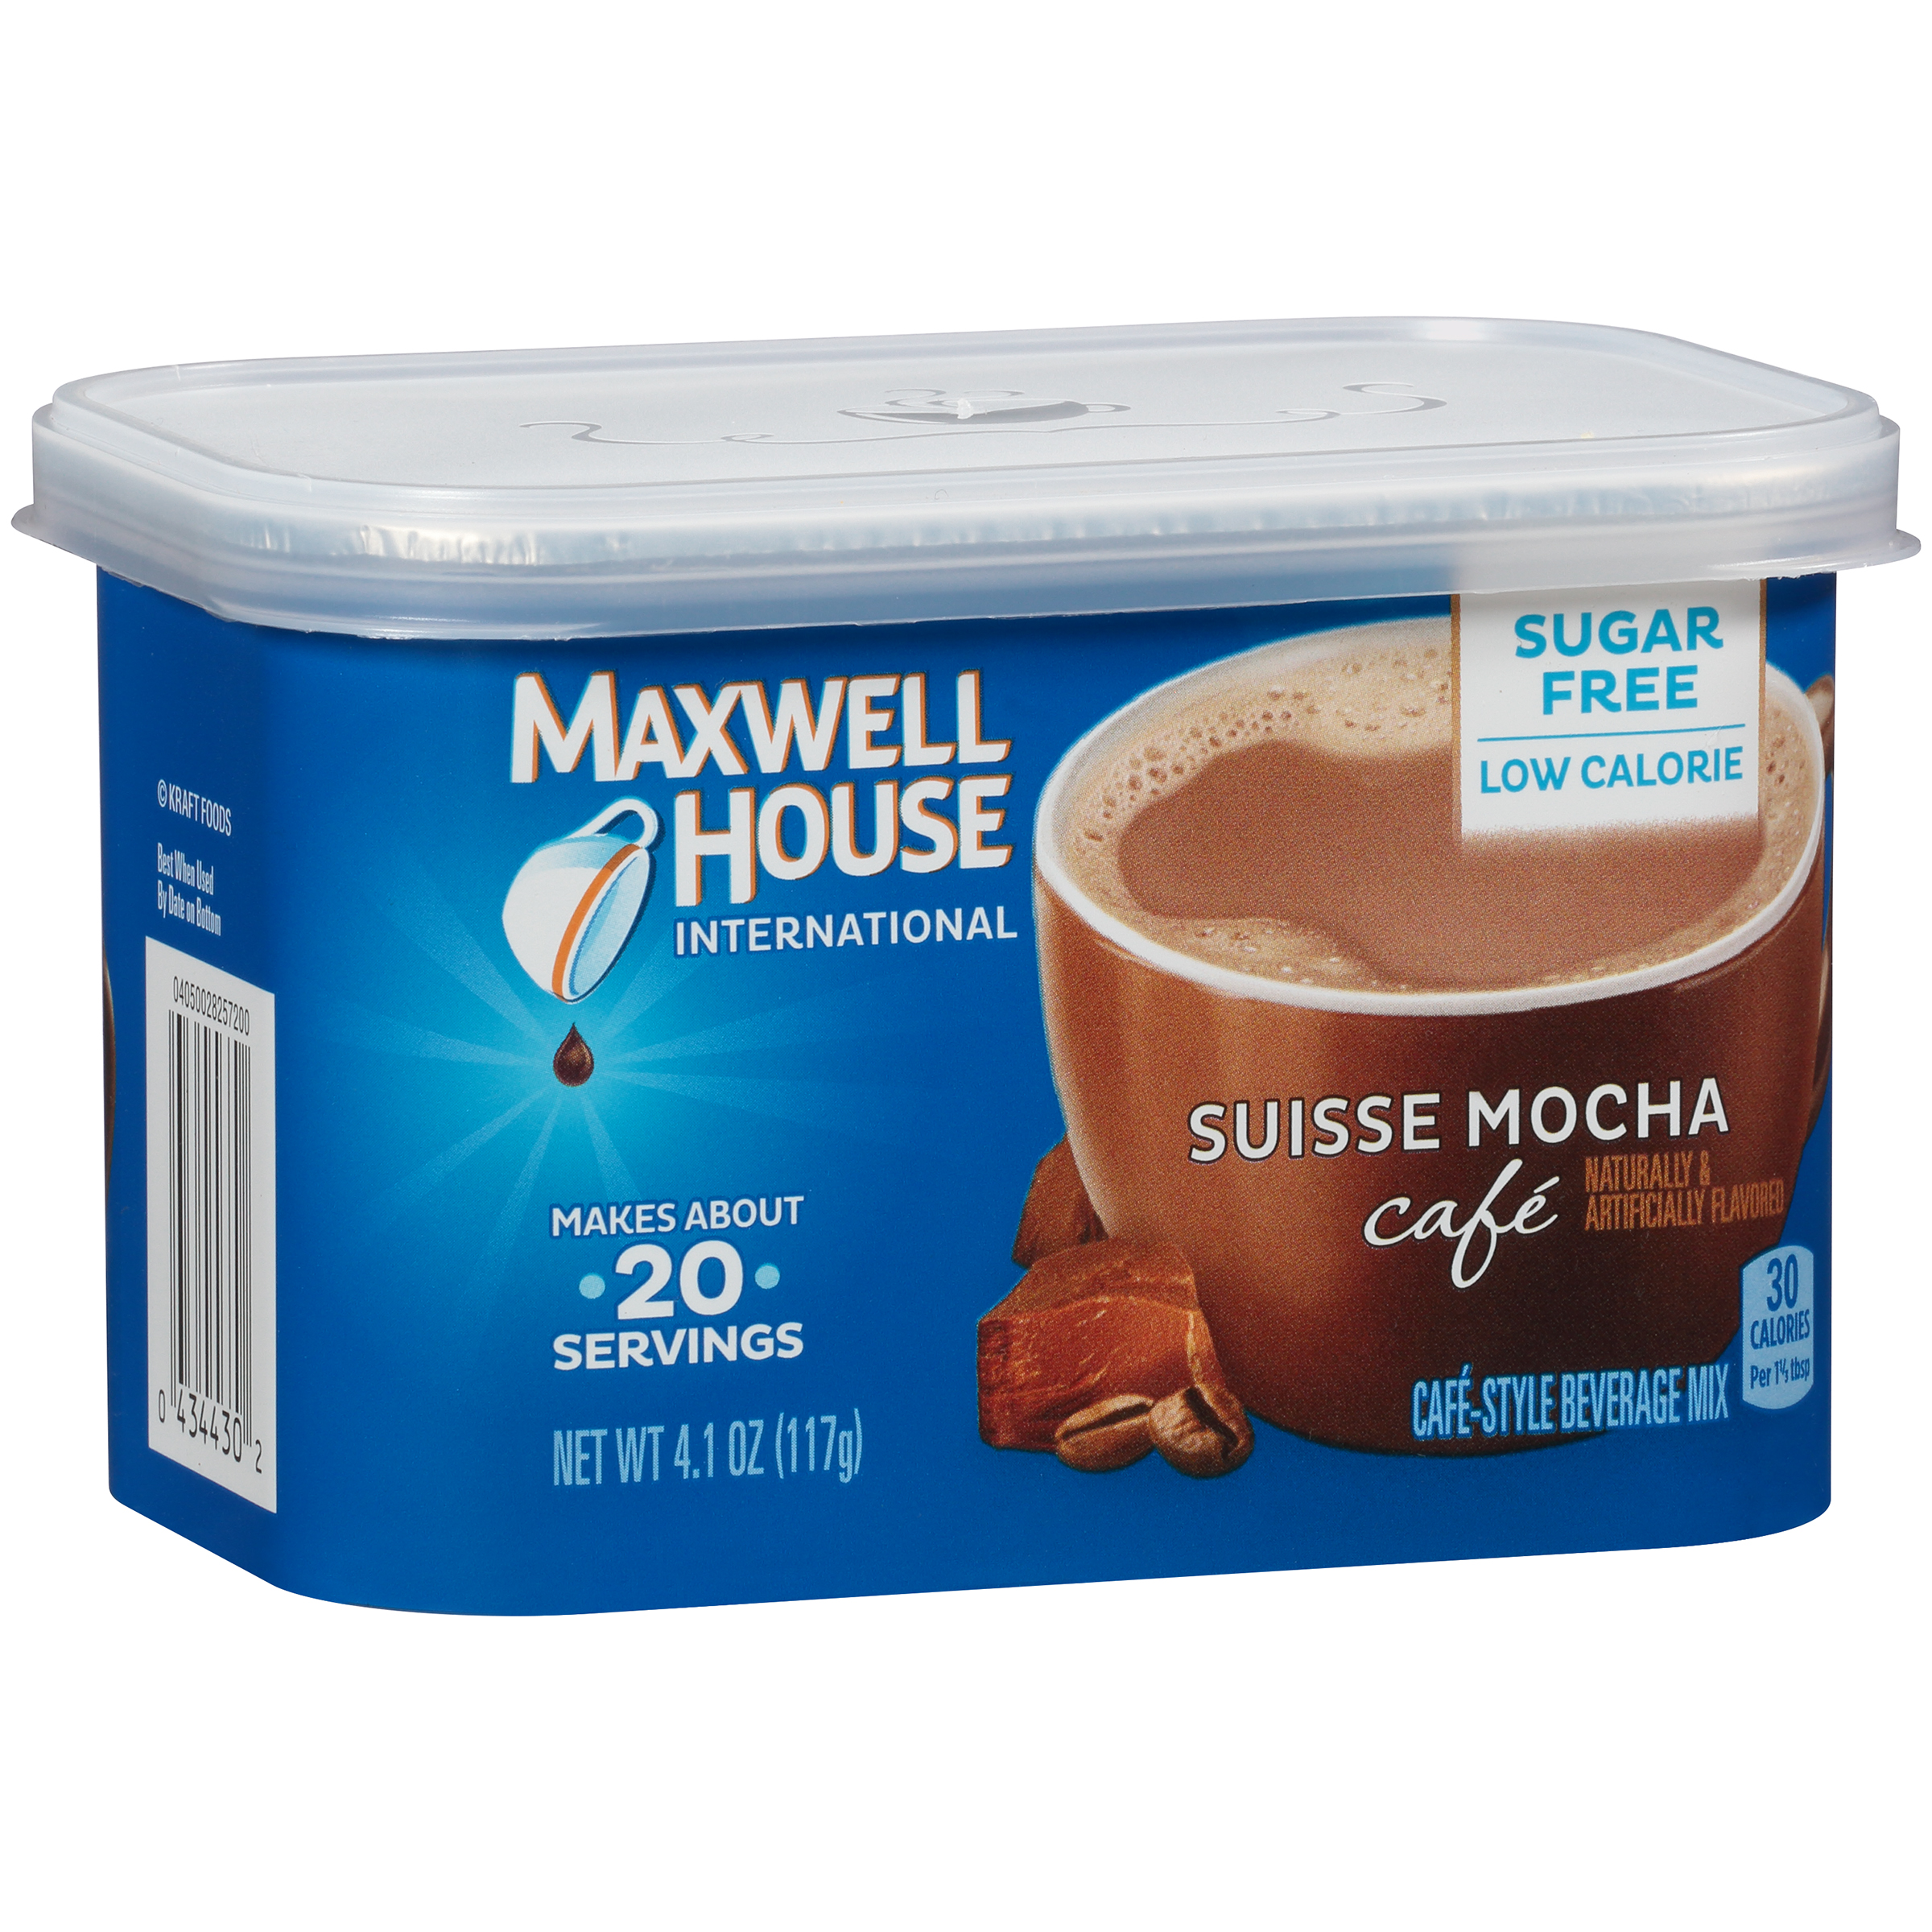 (4 Pack) Maxwell House International Suisse Mocha Cafe